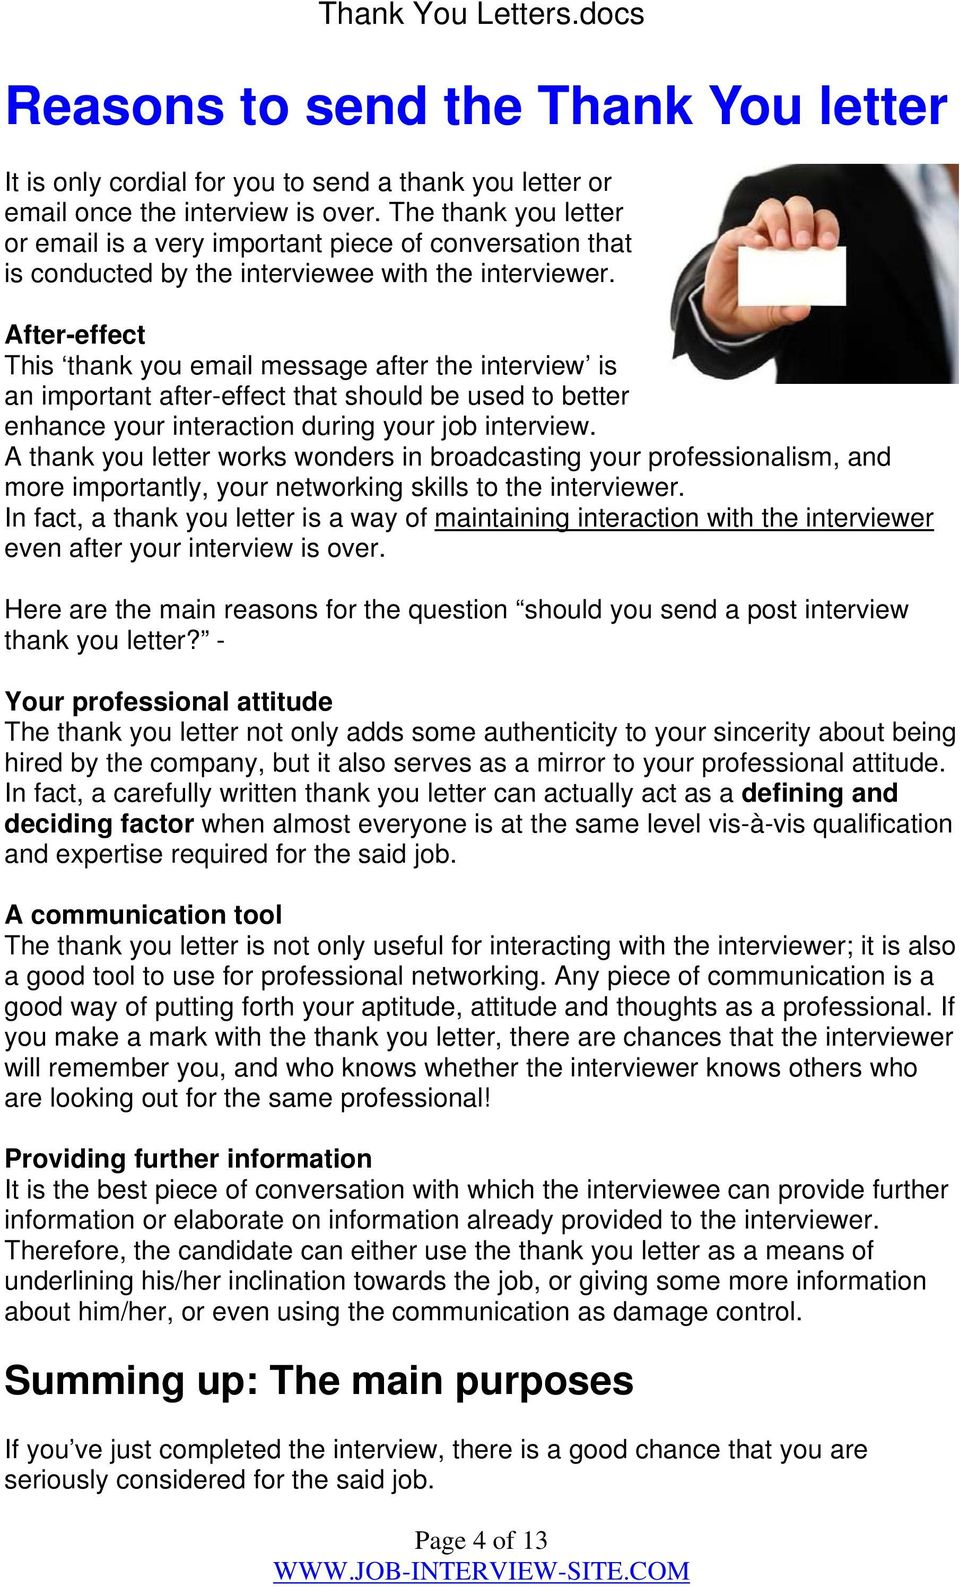 thank you letters after interviews pdf